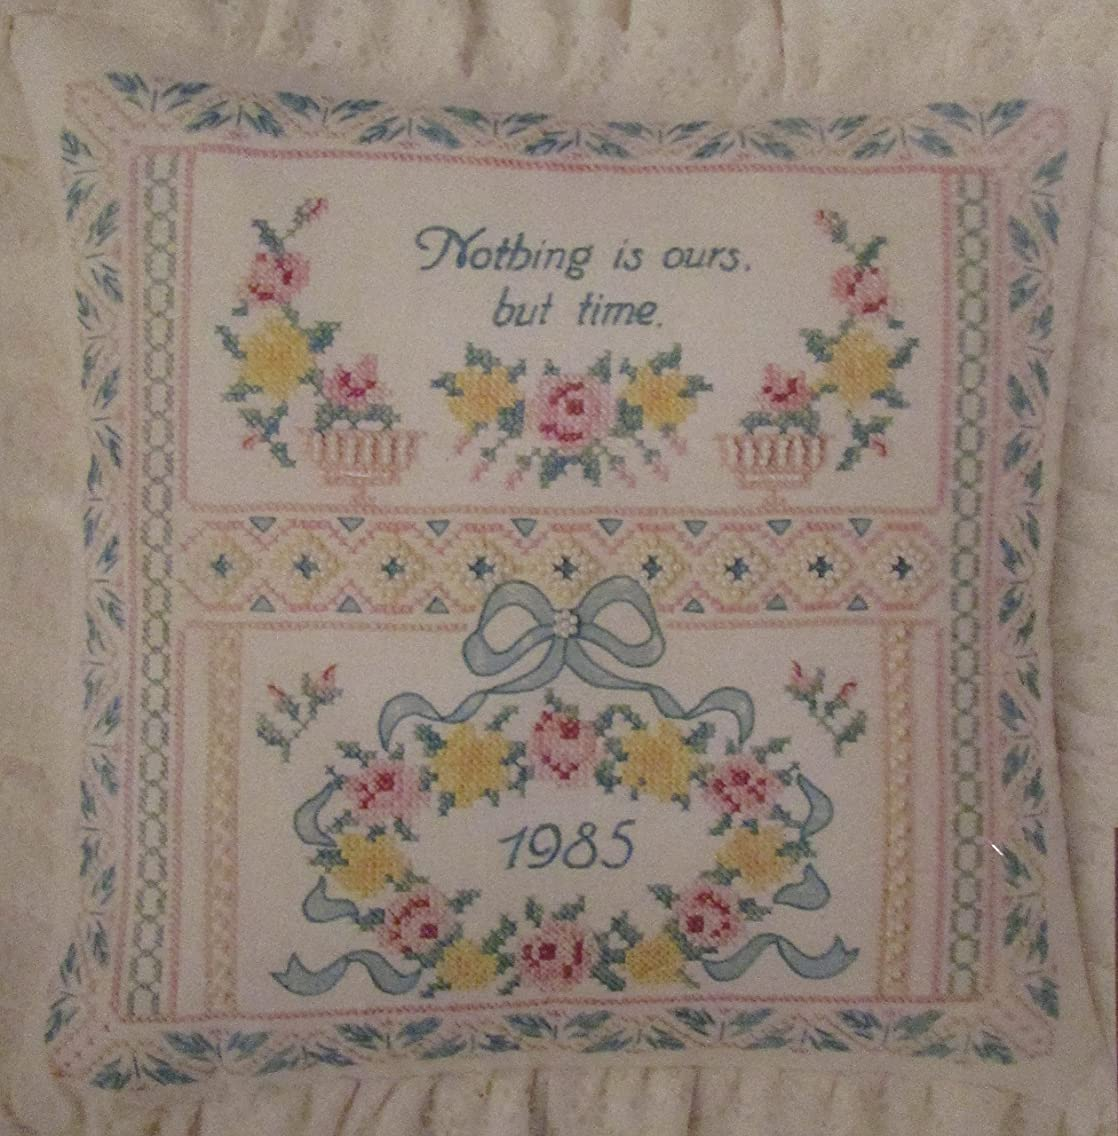 Columbia Minerva Stamper Cross Stitch Kit - Traditional Sampler Pillow or Picture - Nothing is Ours But Time - Kit # 6954 - 14